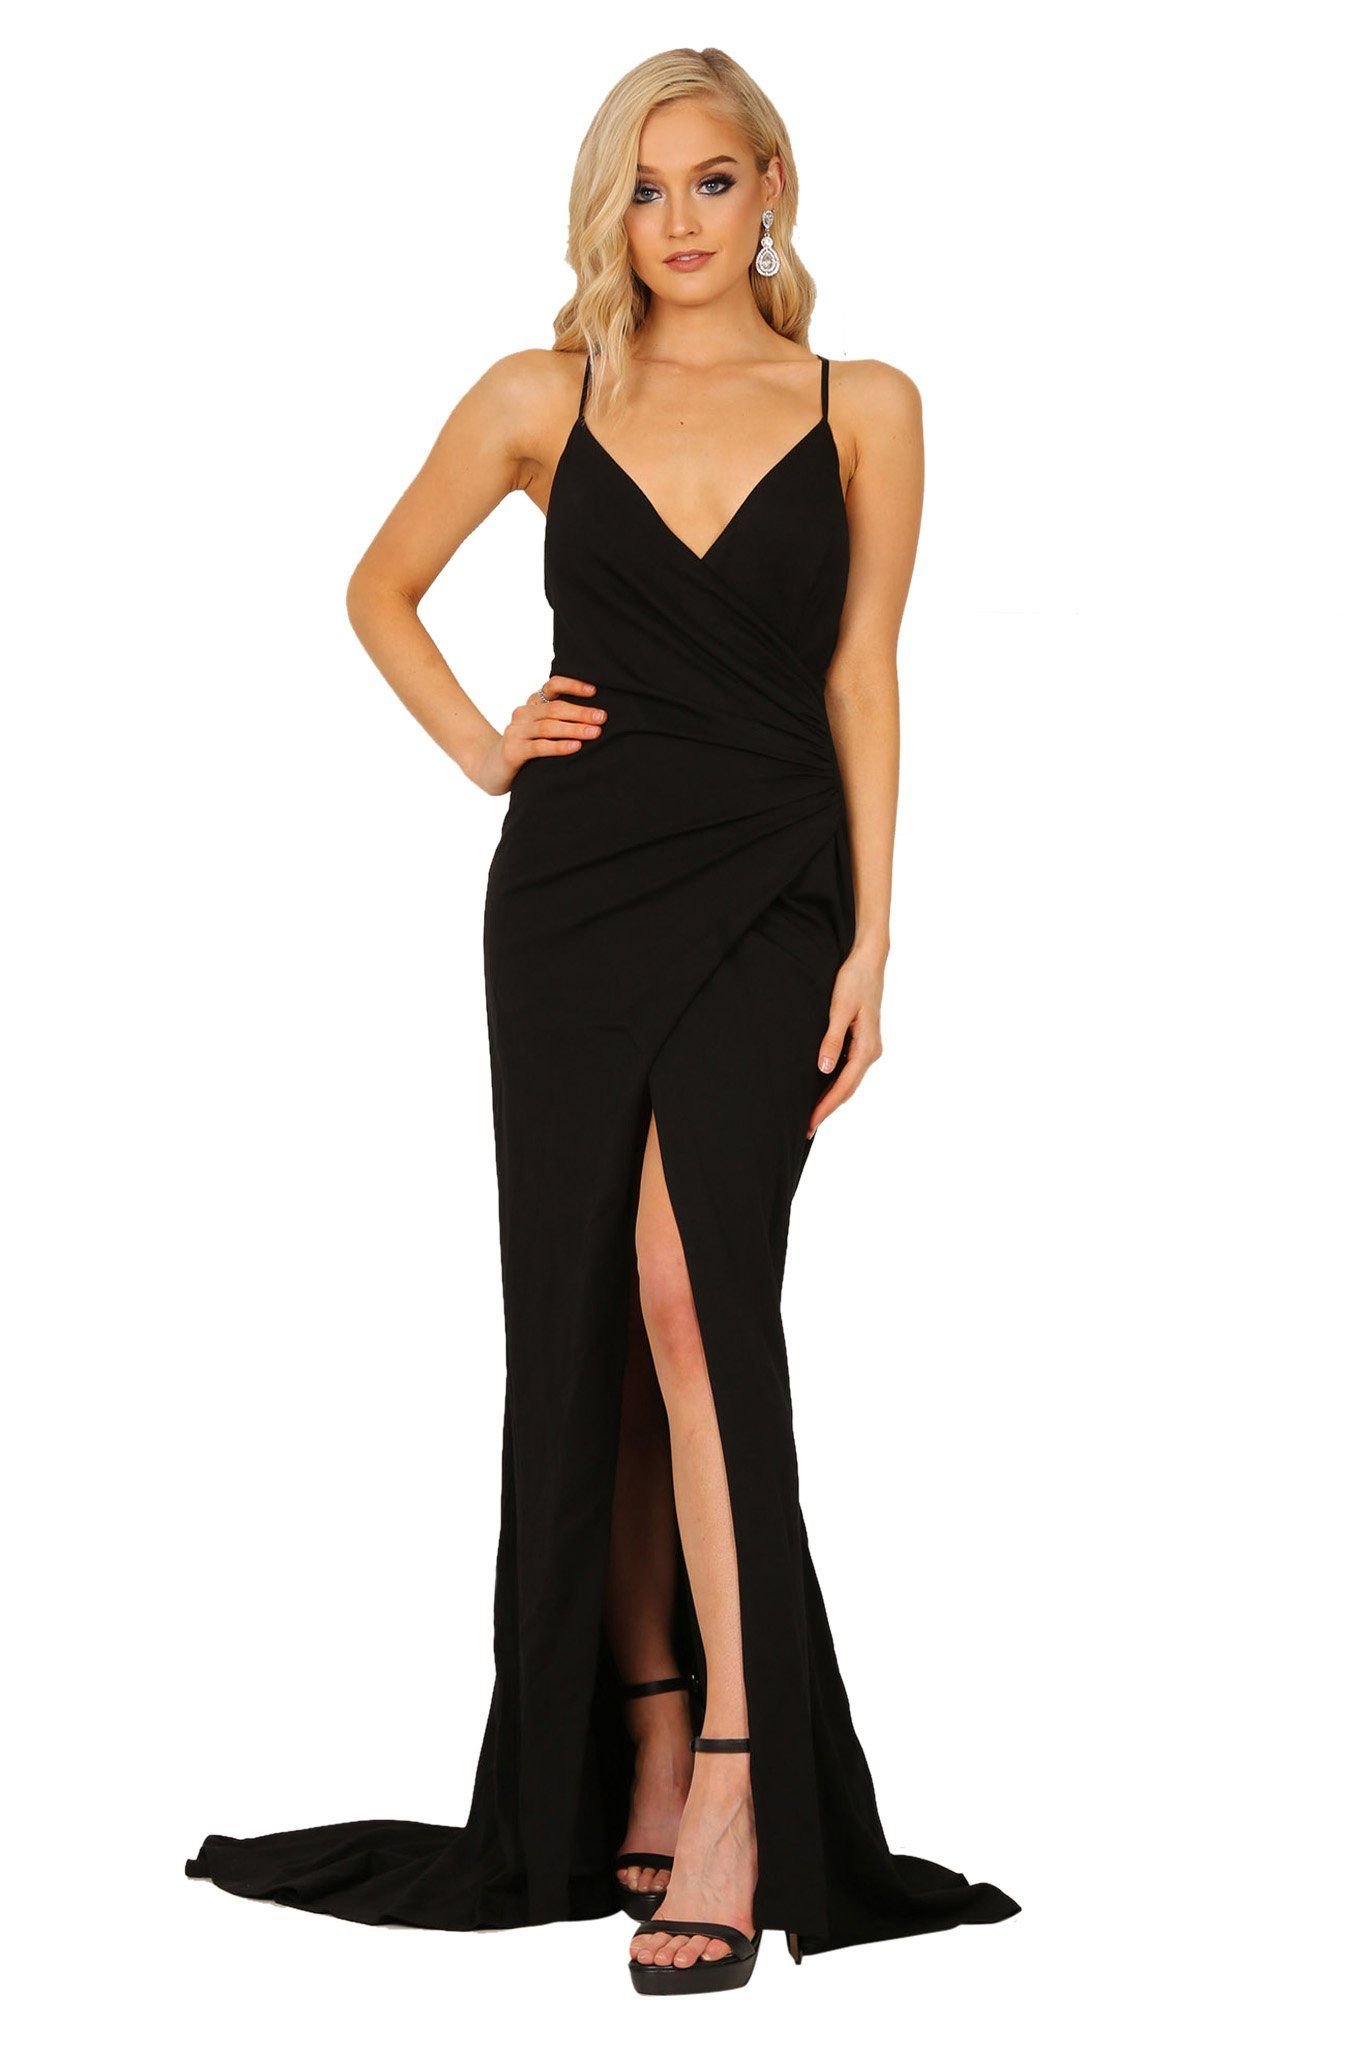 Black faux wrap maxi dress with v neckline, crisscross back straps, high front slit and long train